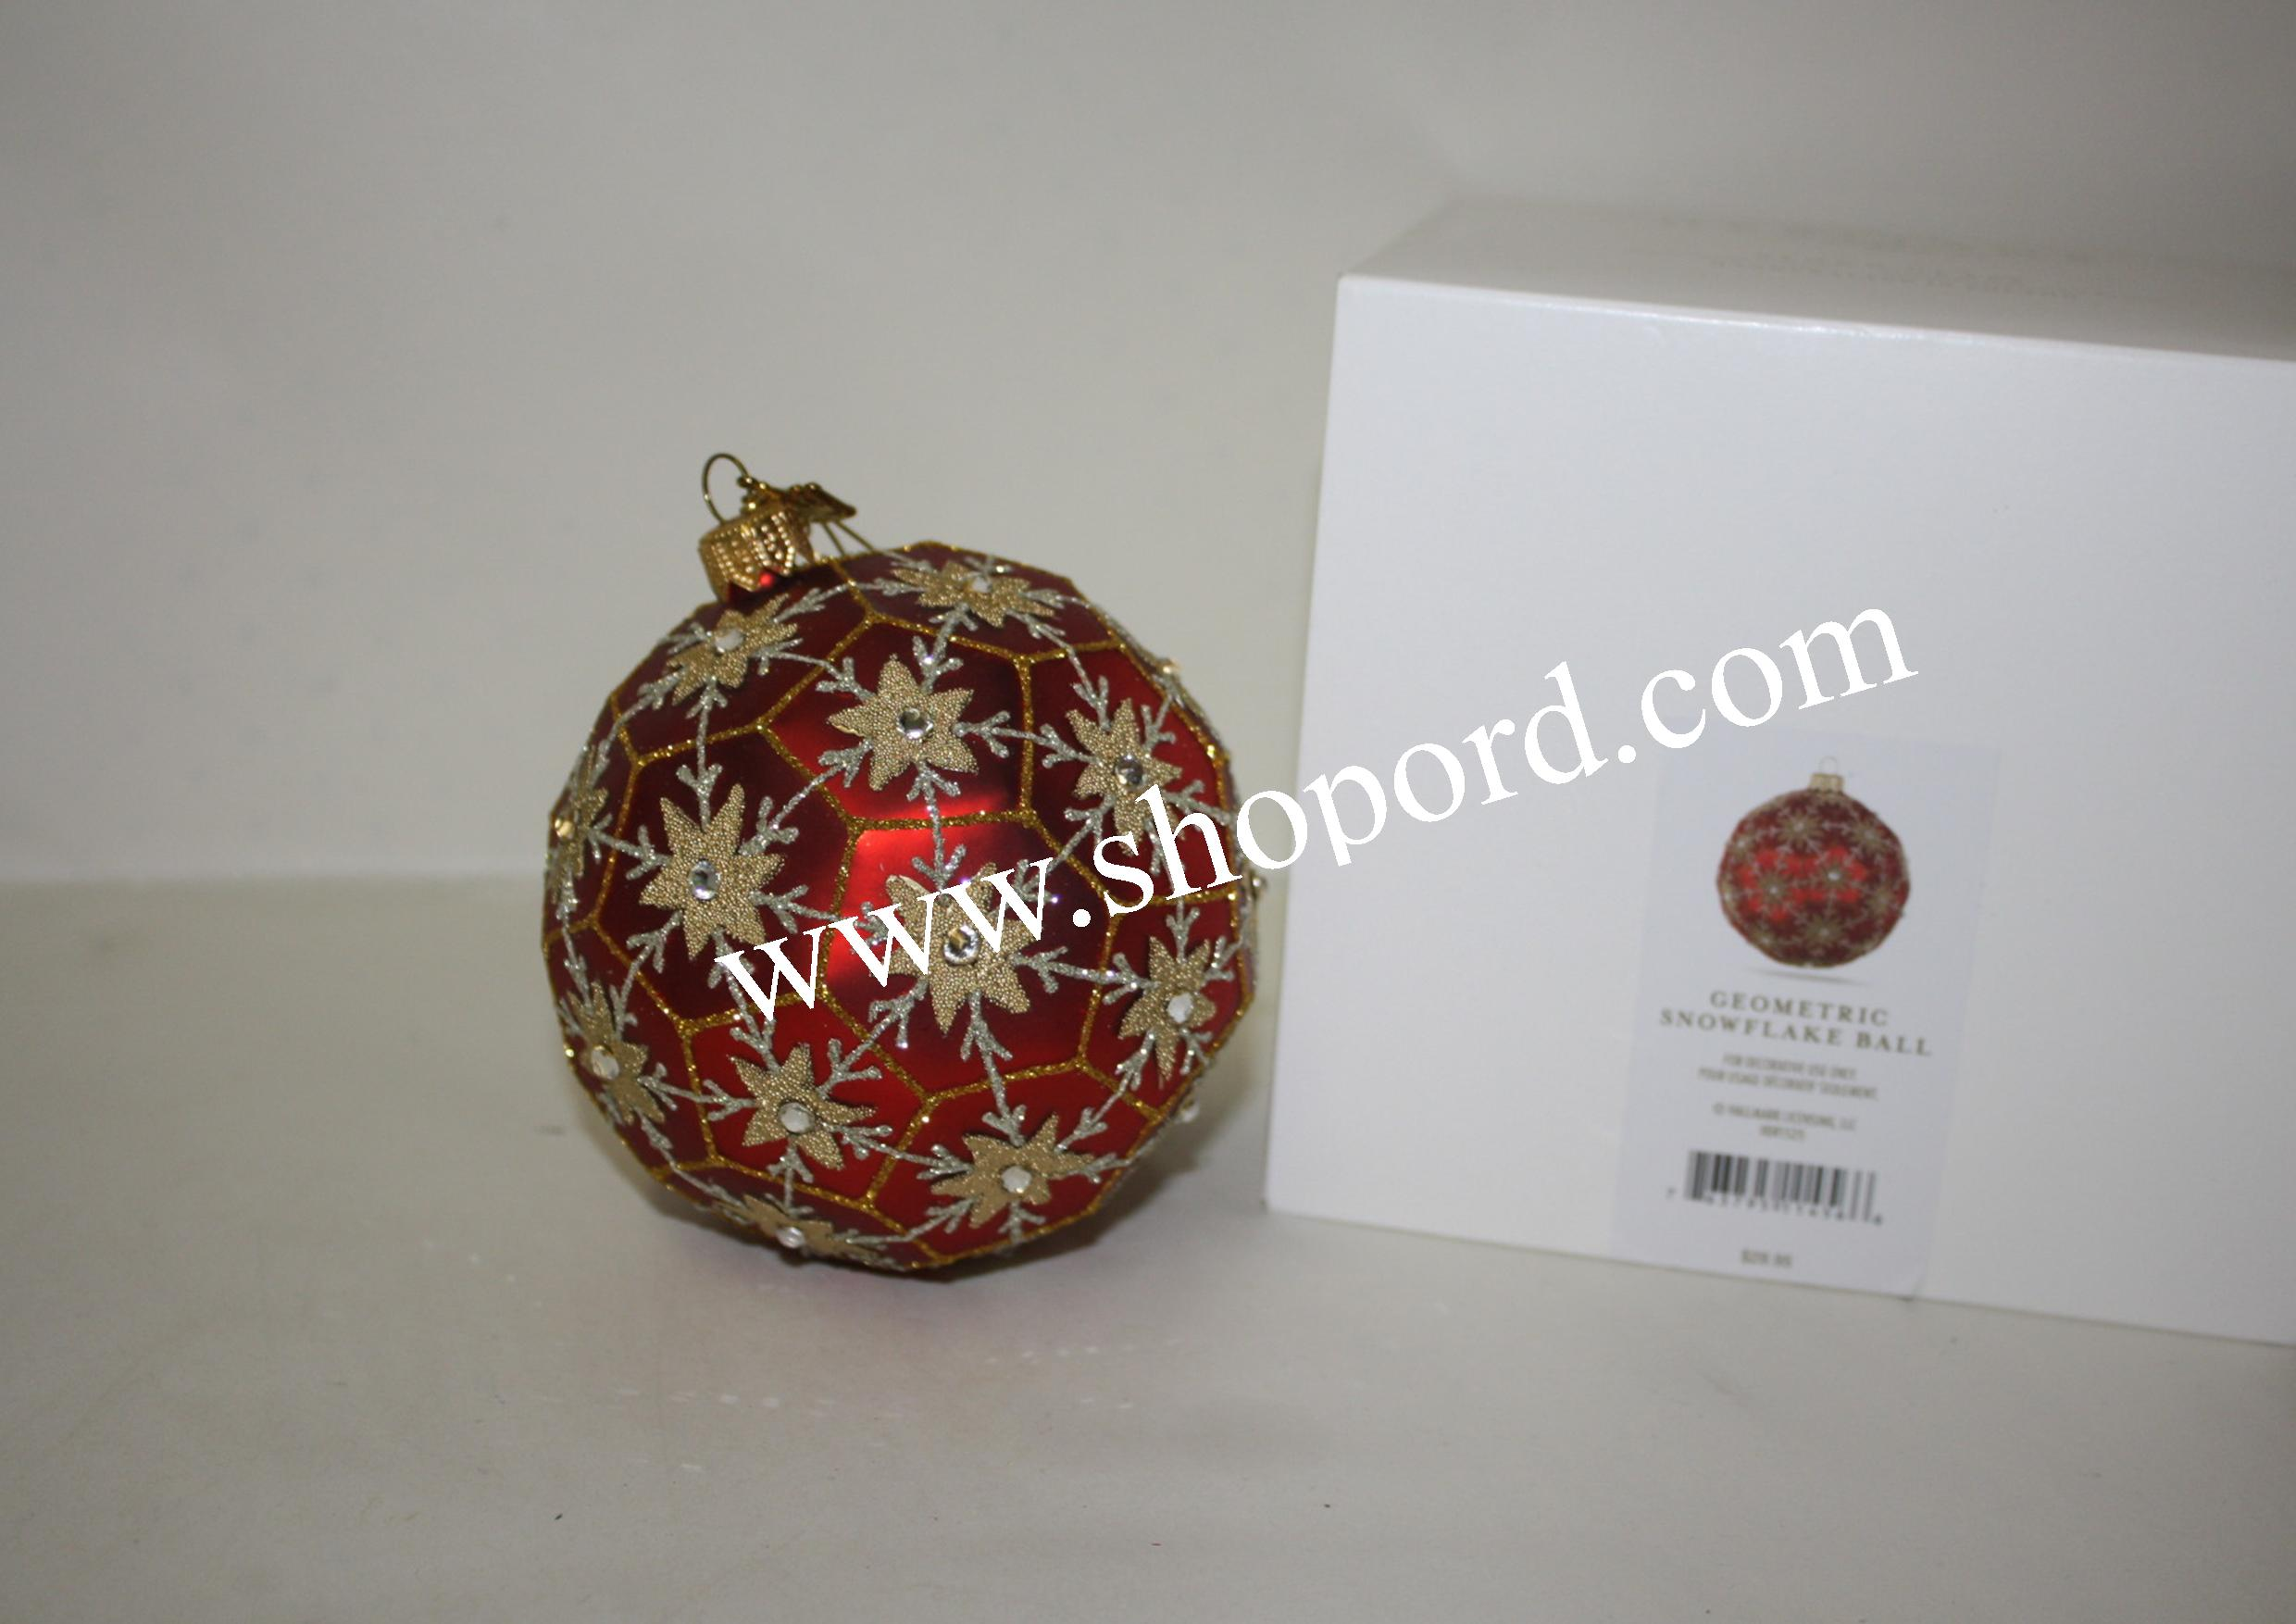 Hallmark 2016 Geometric Snowflake Ball Heritage Collection Ornament HDR1525 Damaged Box